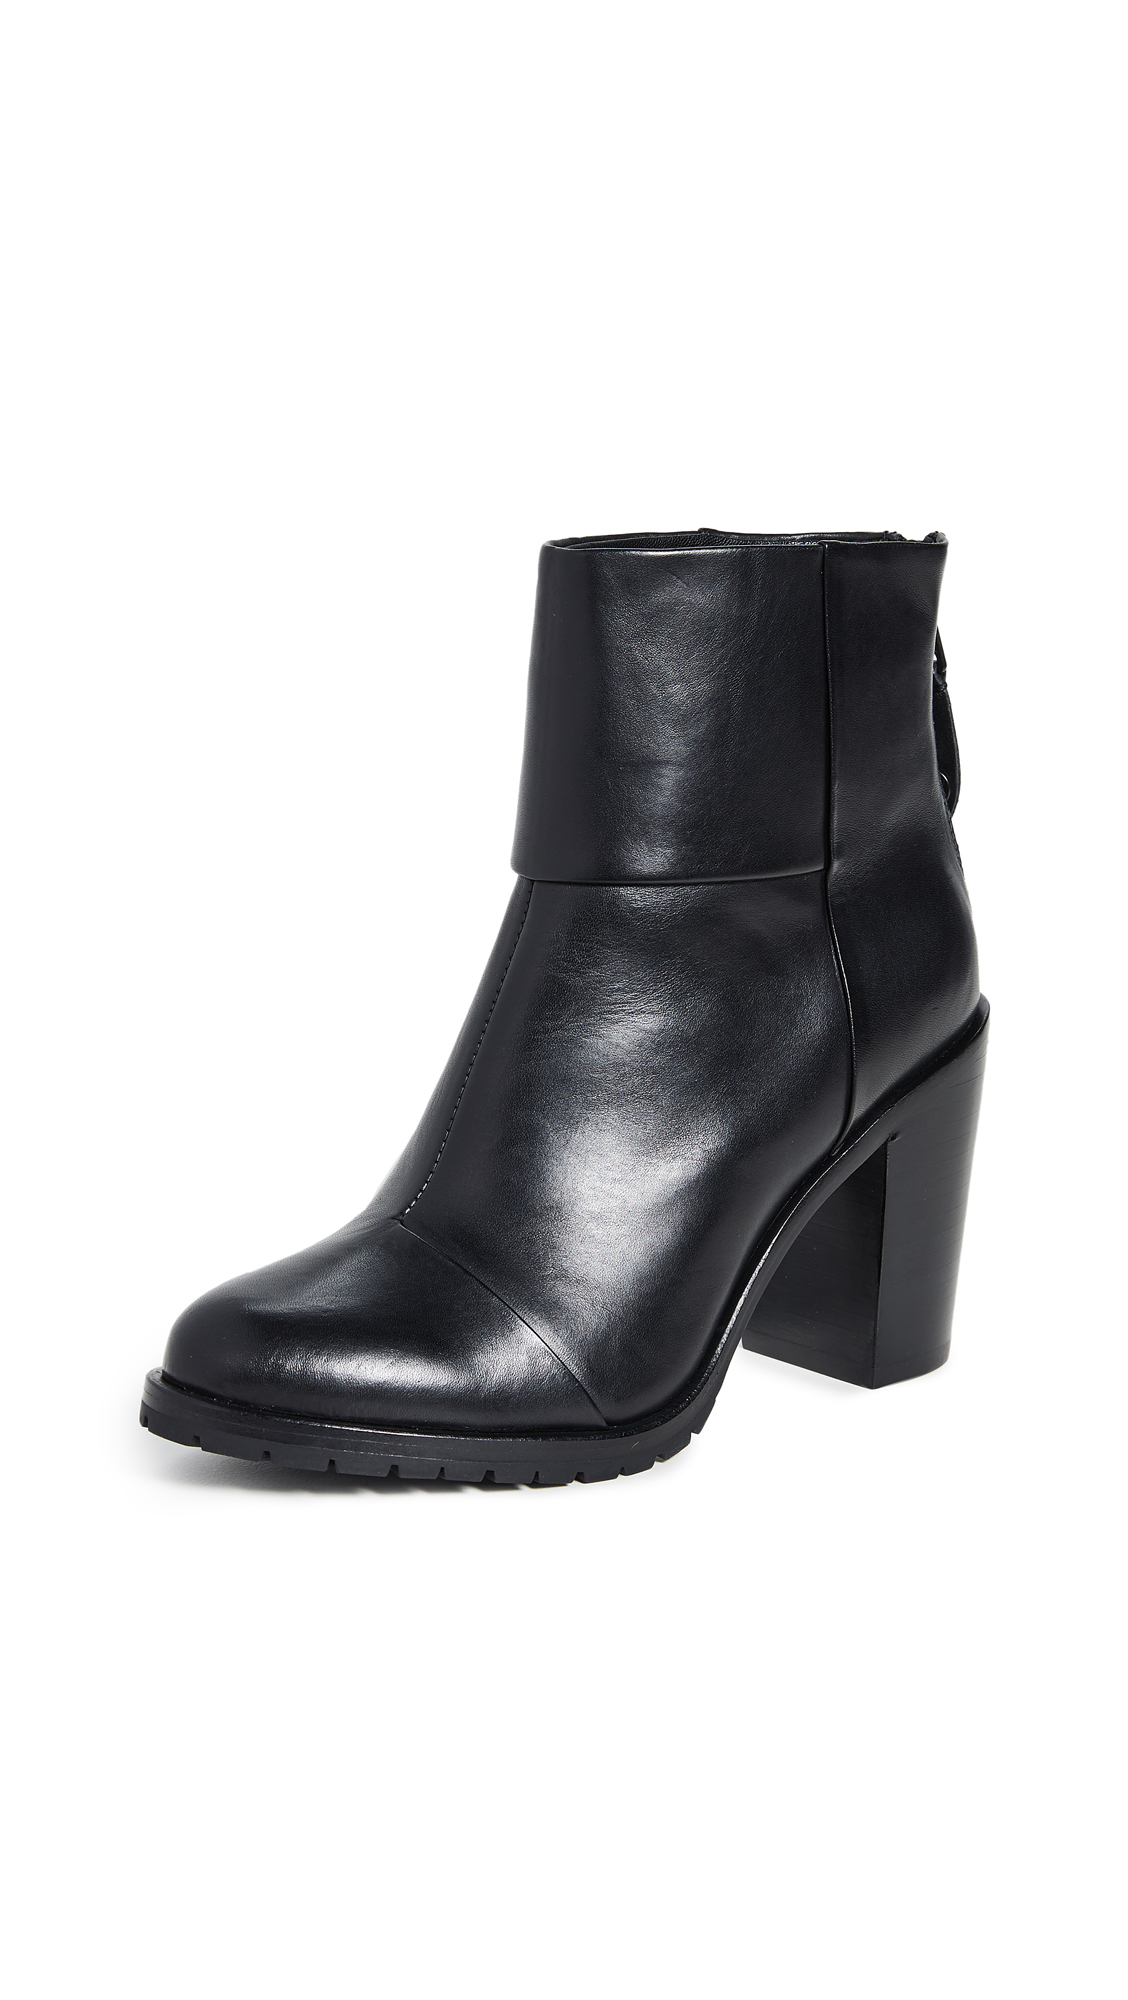 Rag & Bone Newbury 2.0 Booties - 30% Off Sale